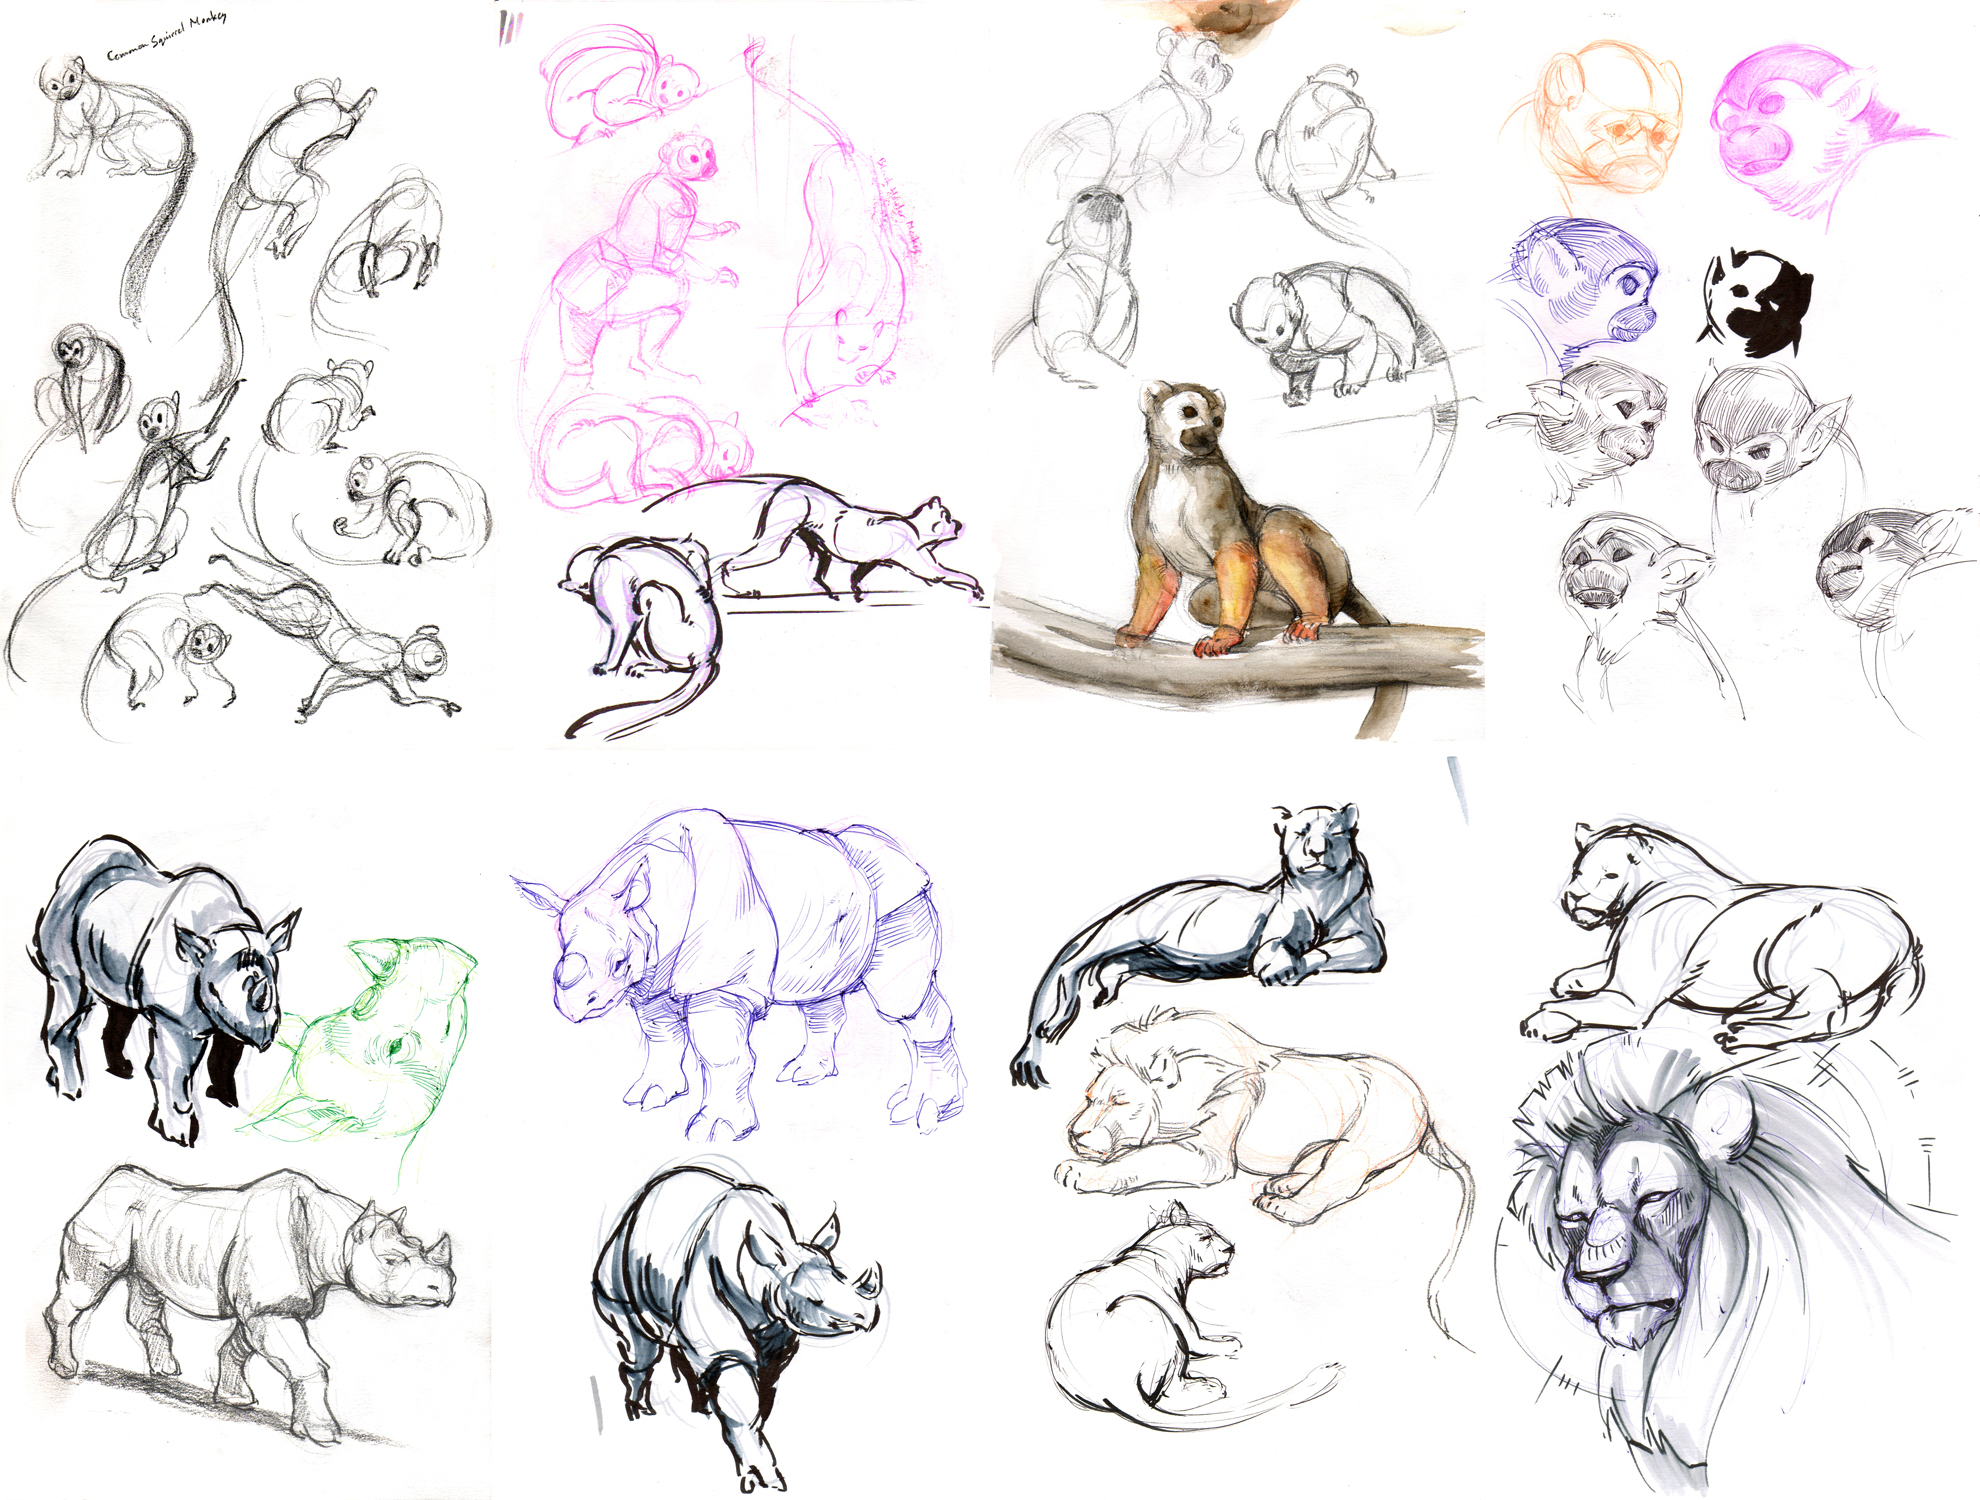 Line Drawings Of Zoo Animals : Zoo sketches by orangetavi on deviantart